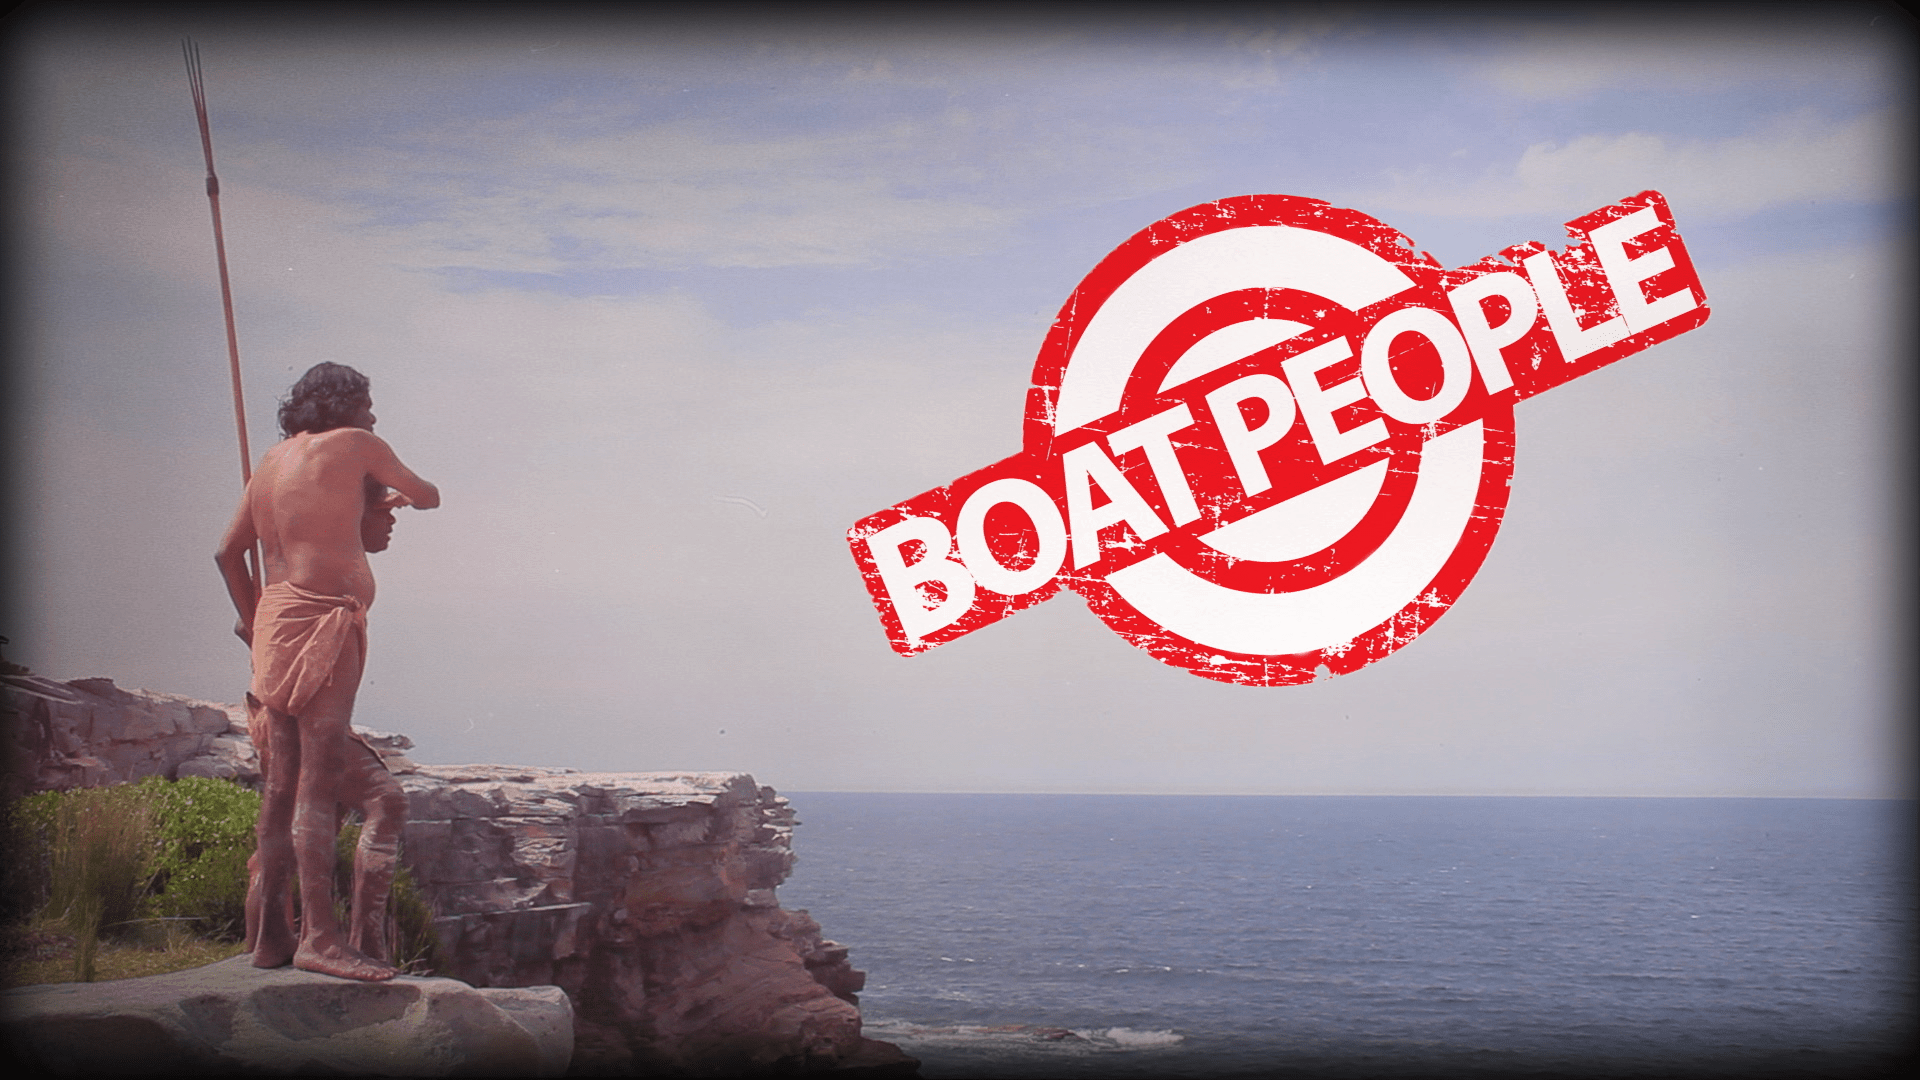 Greek Australian director behind Boat People Comedy 21